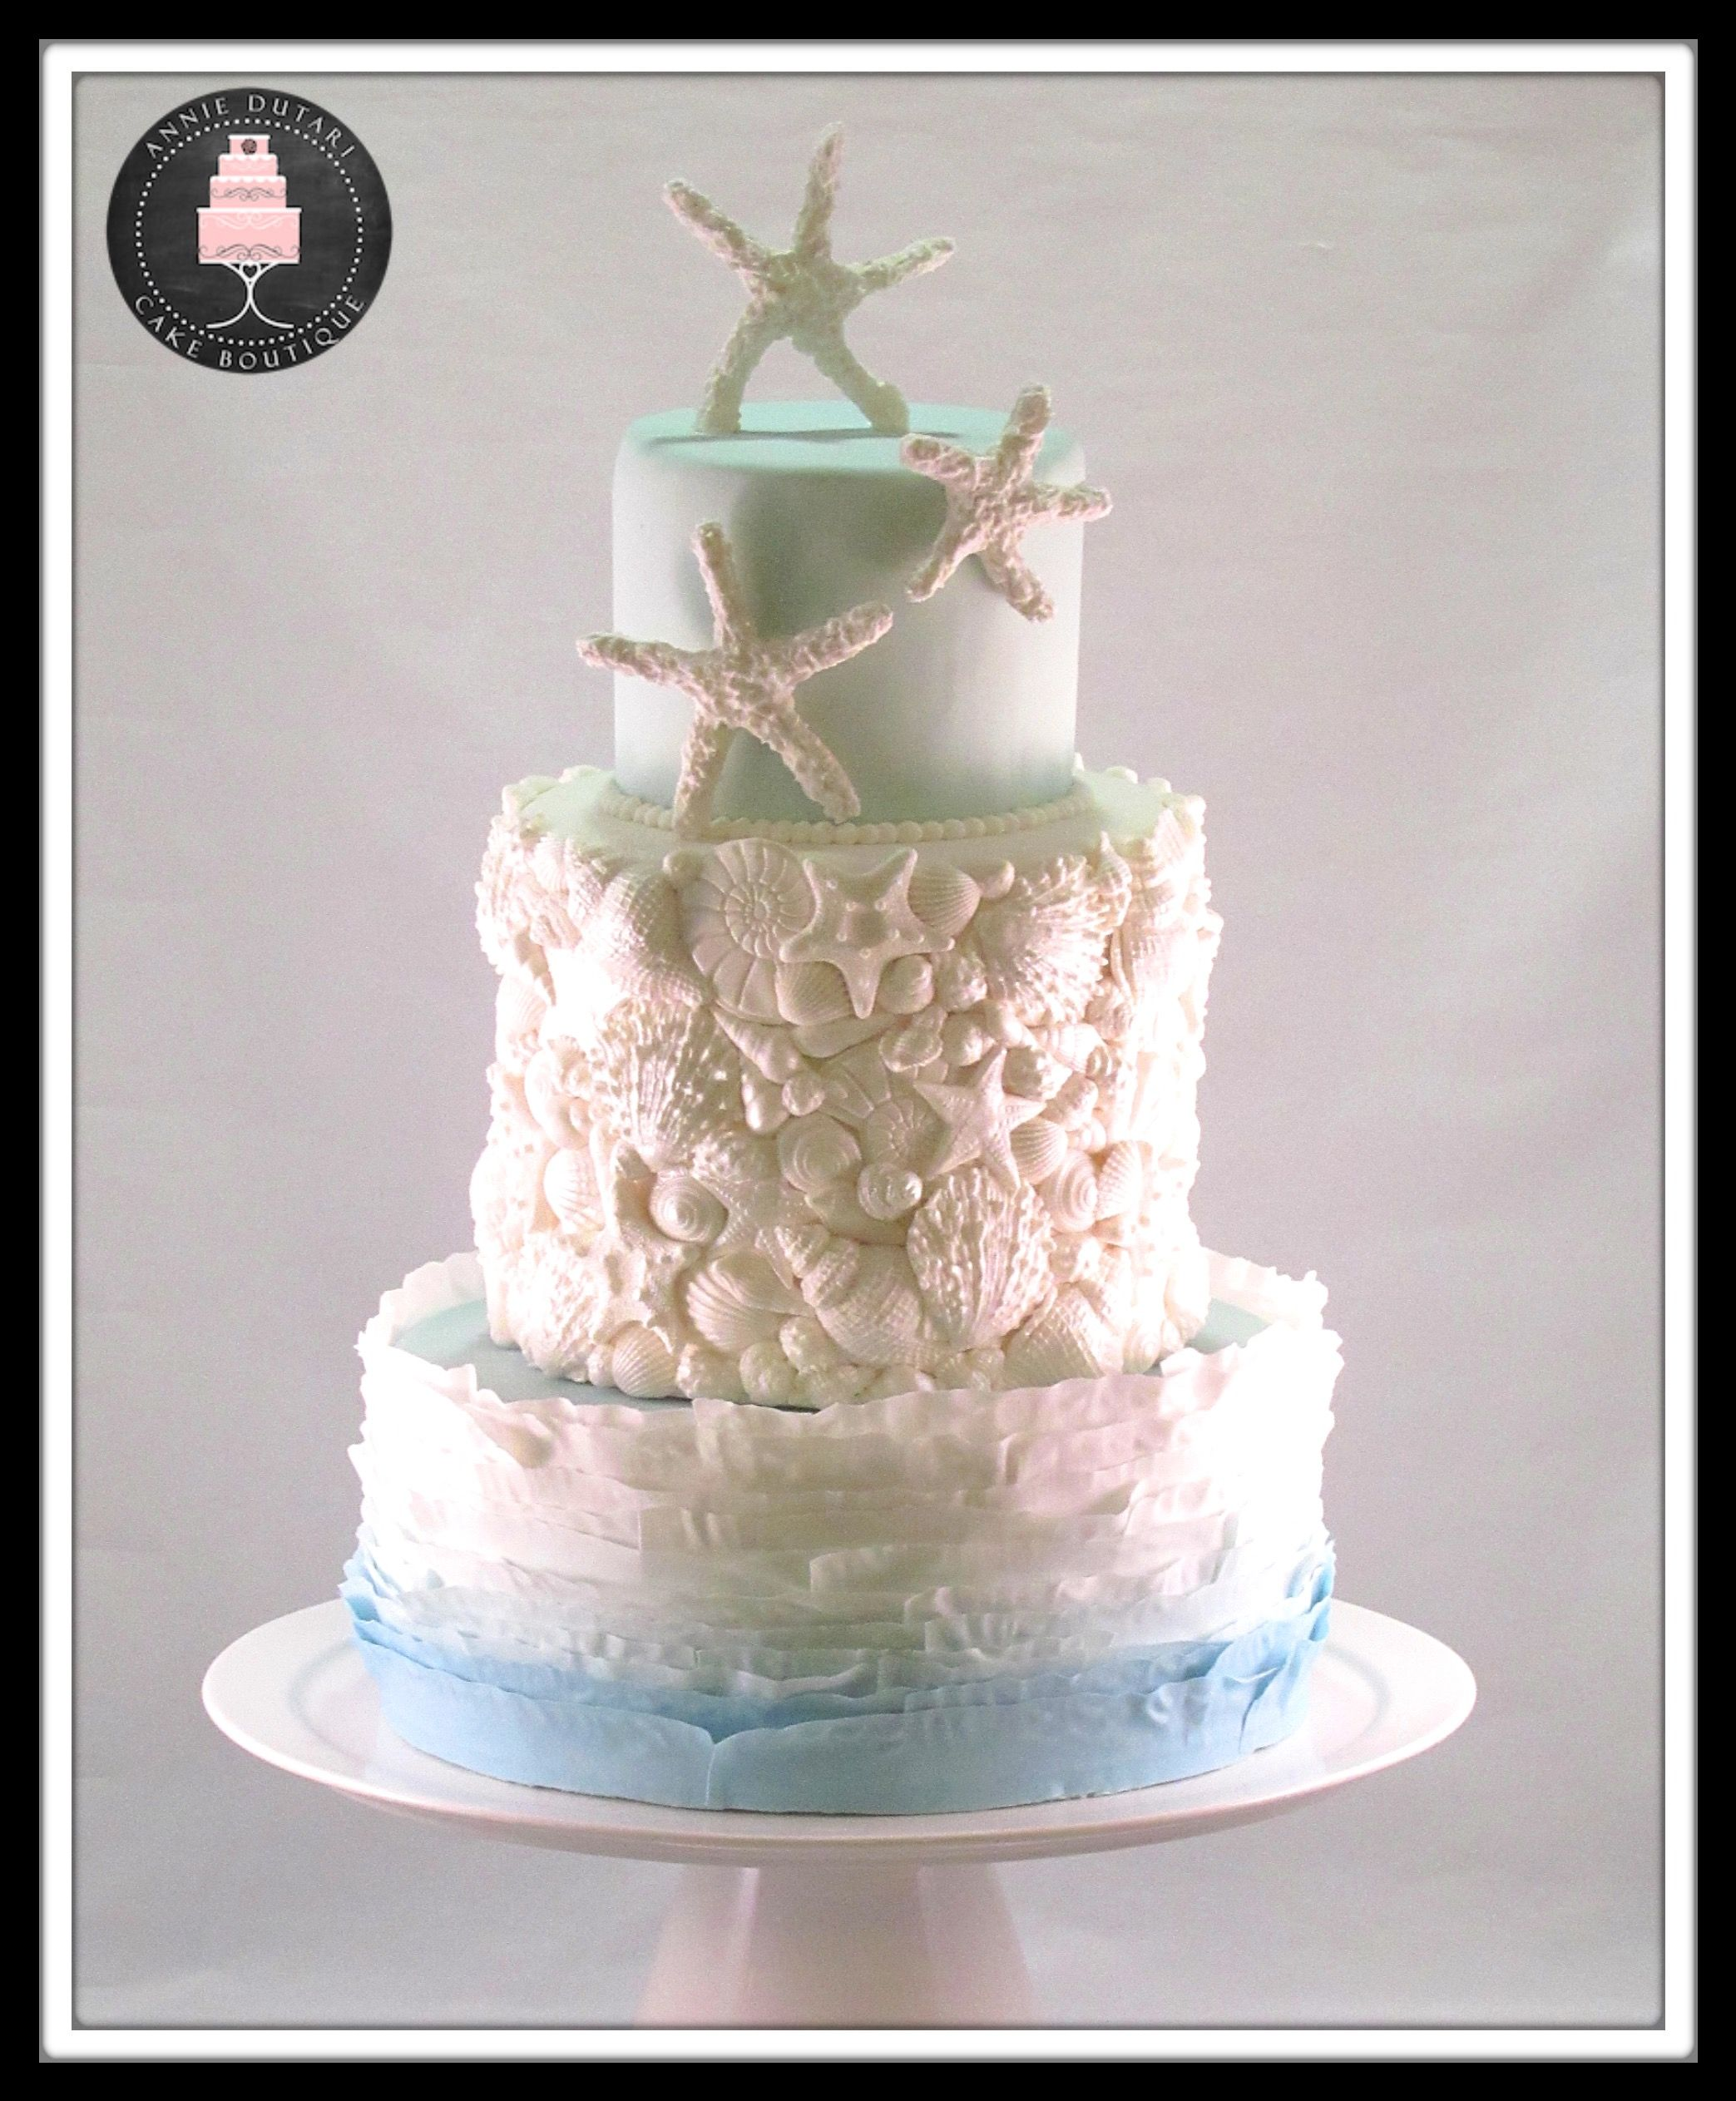 Beach themed wedding cake. Champagne and strawberries cake covered ...